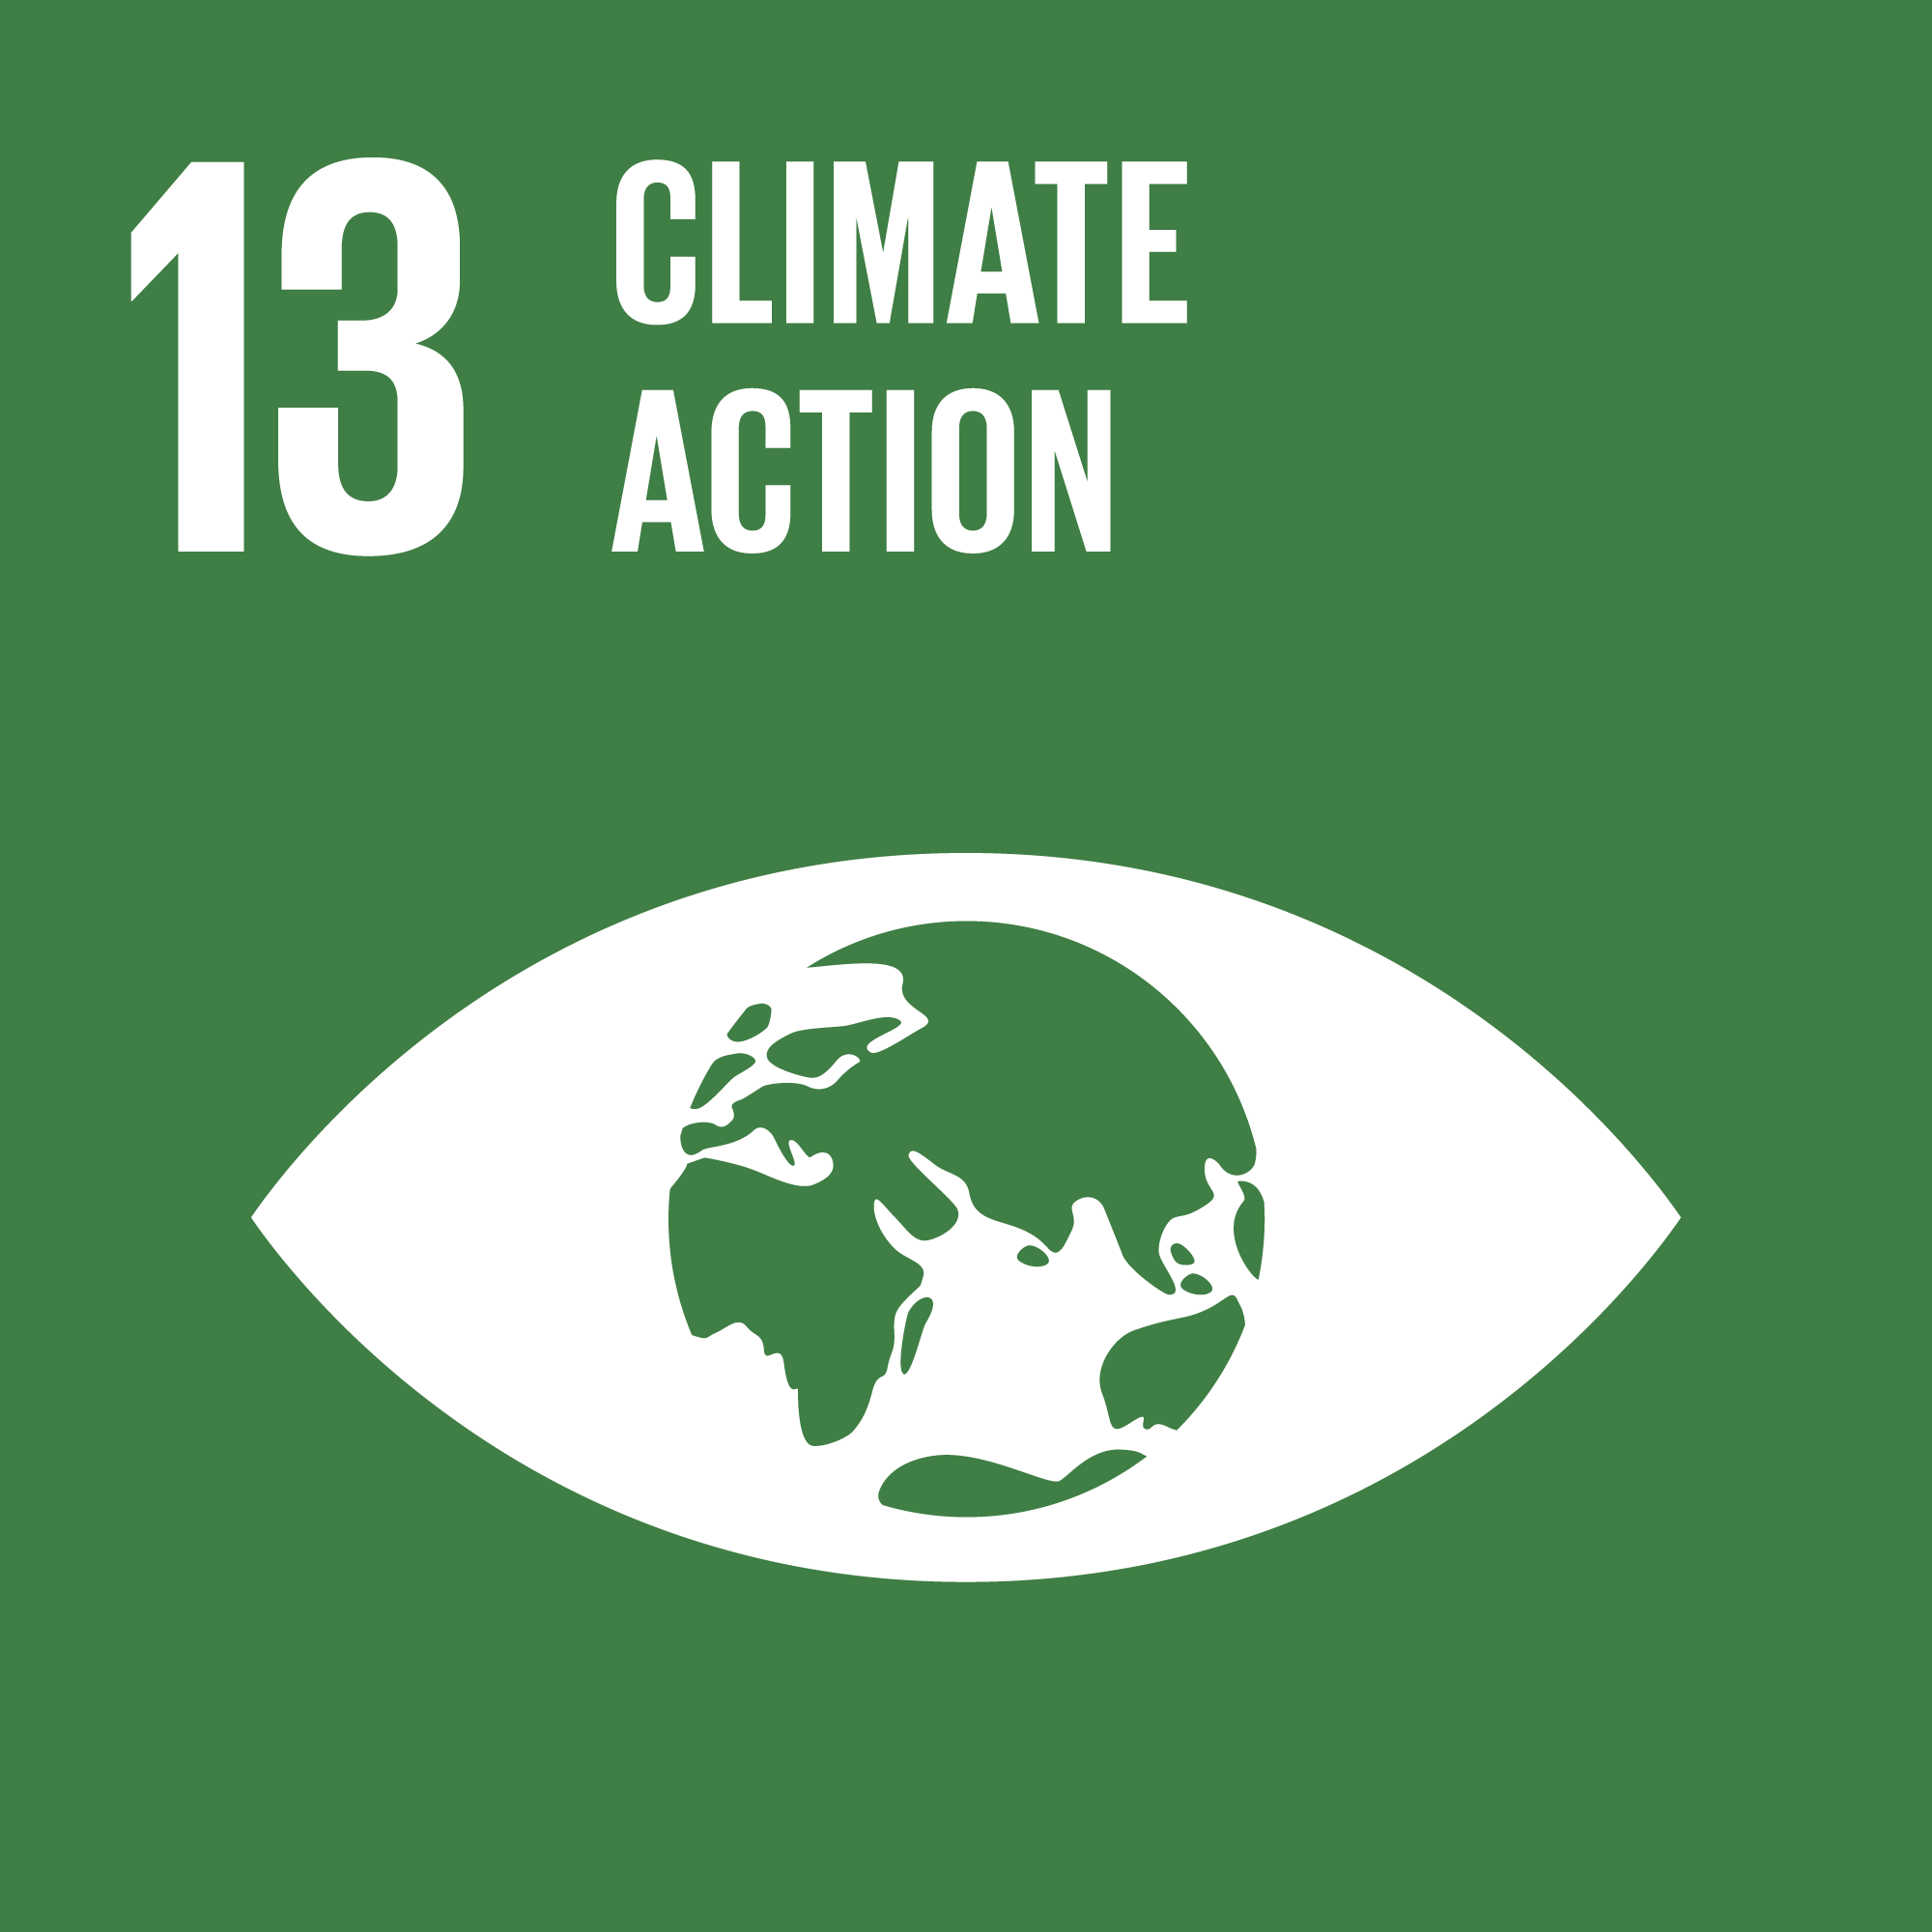 Icon for the global goals number 13, Climate action